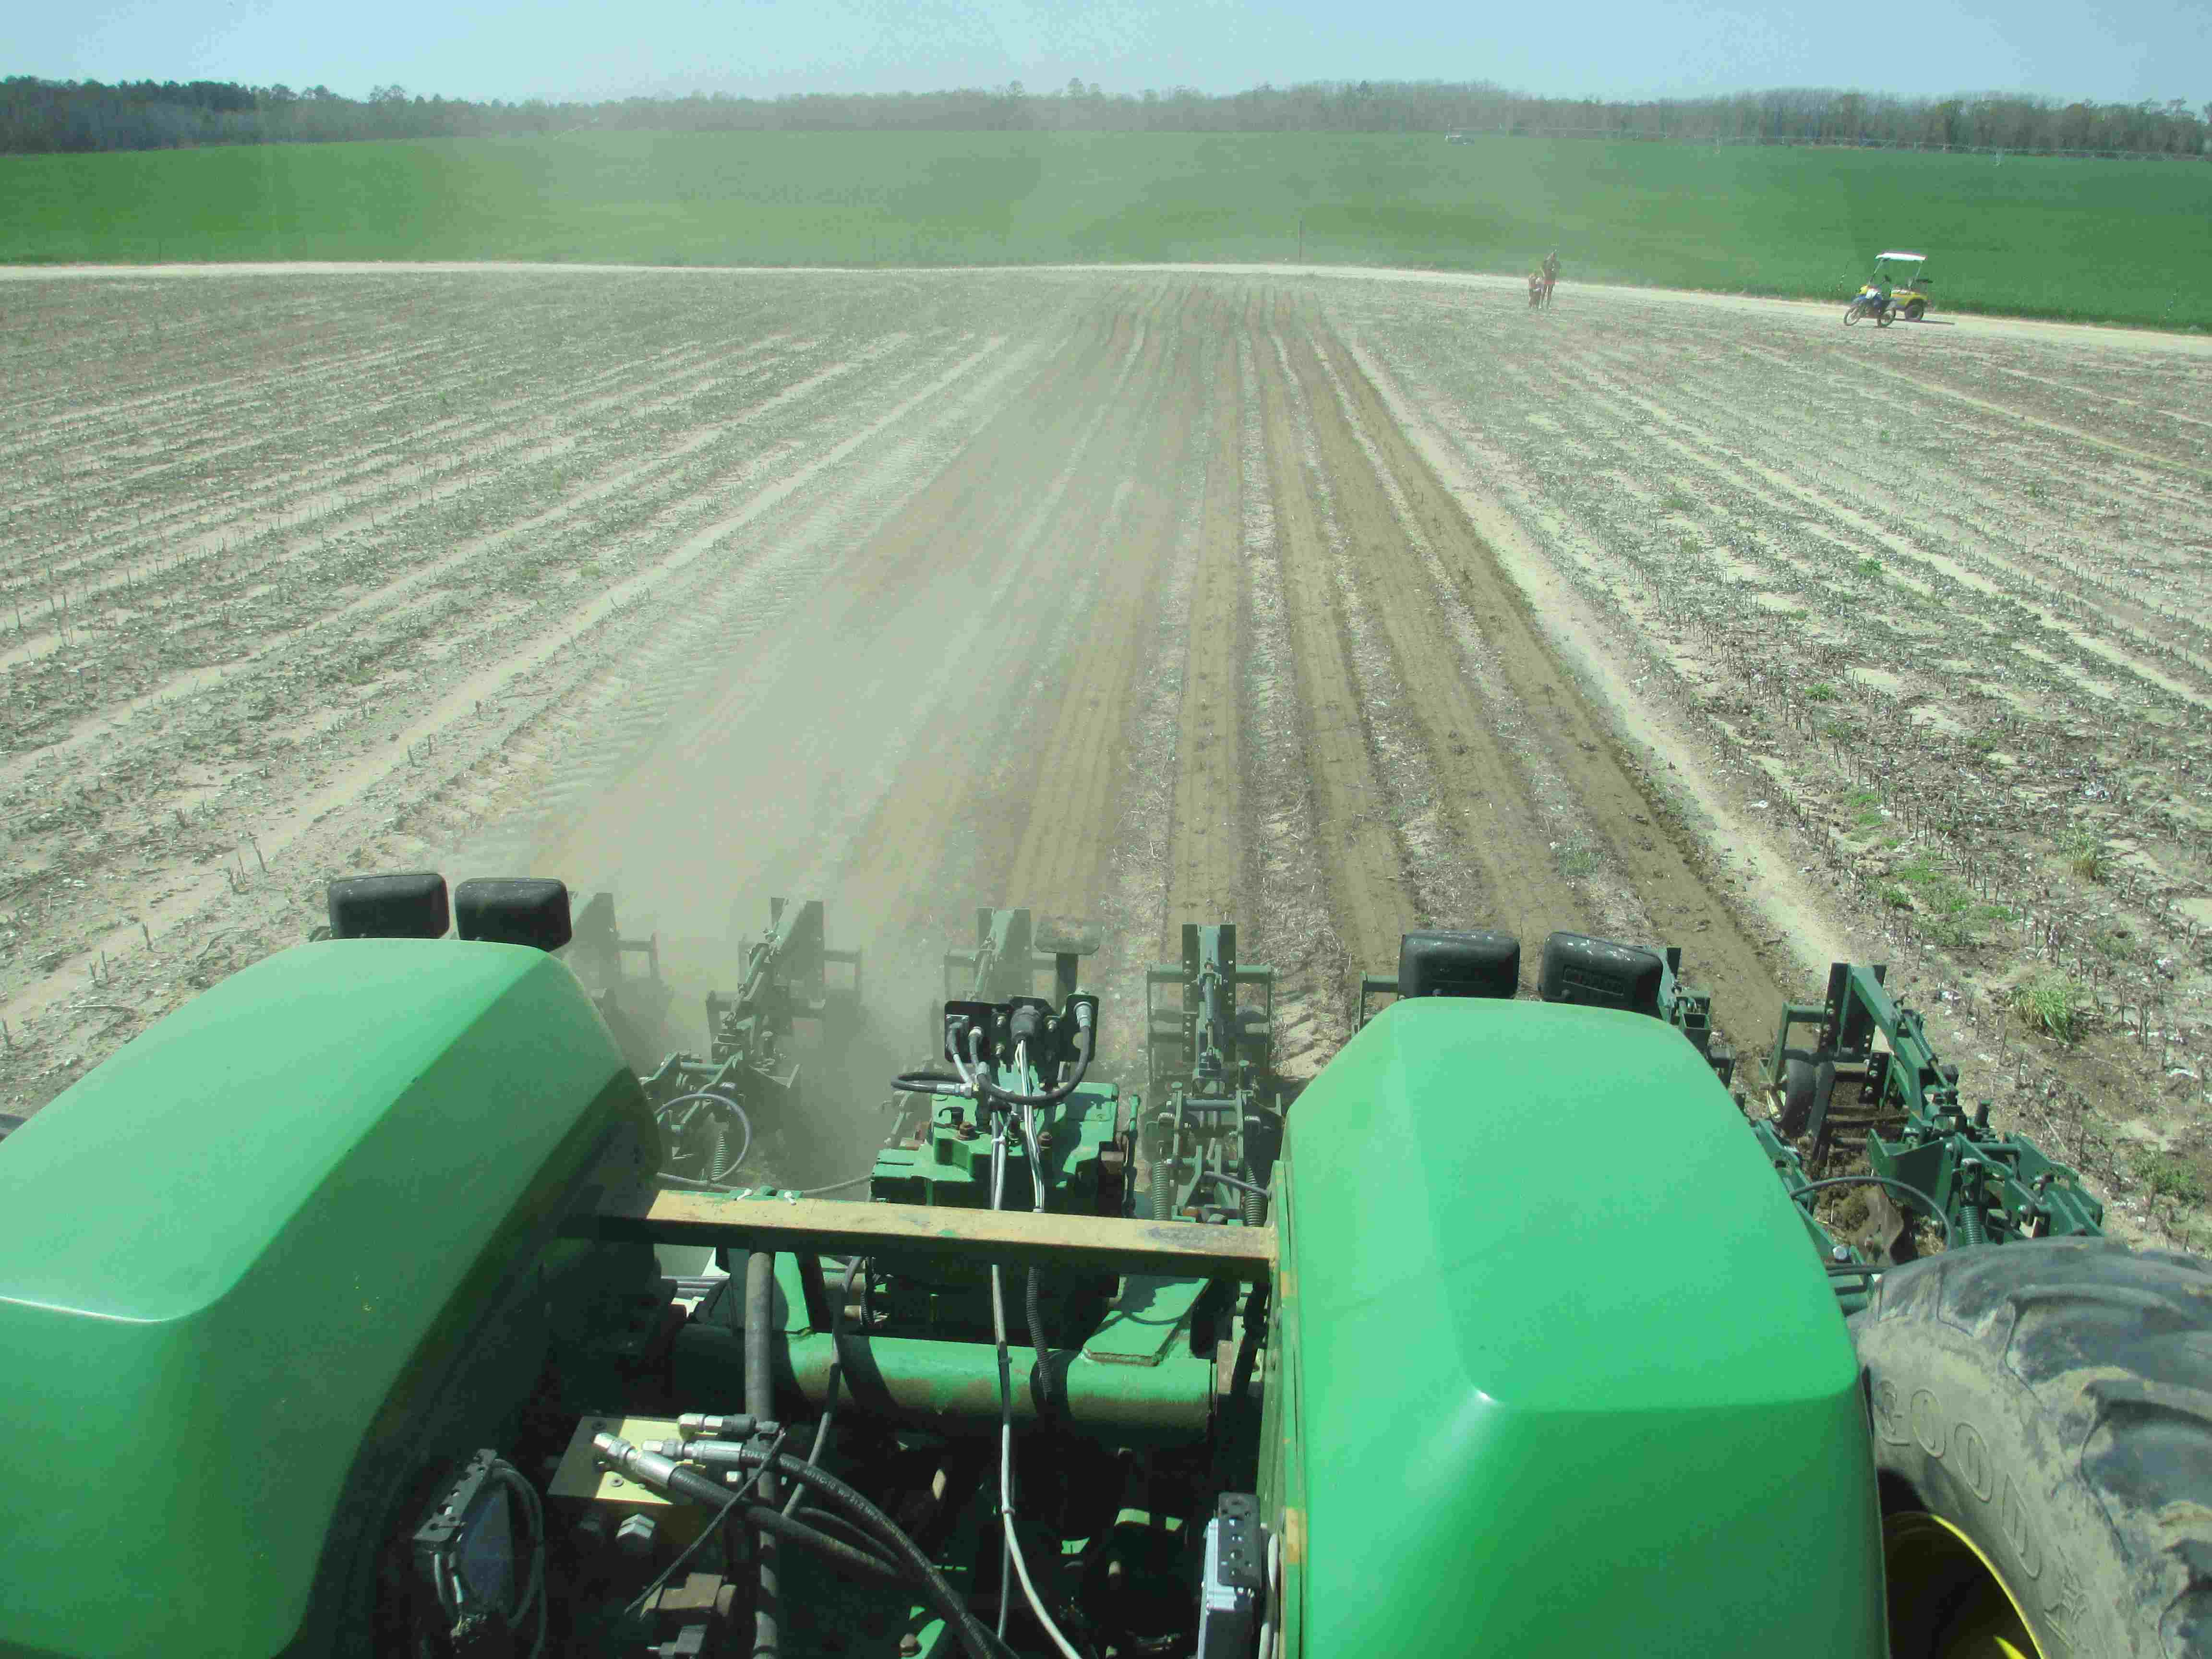 More anhydrous and strip tillage. Credit: J. Thompson